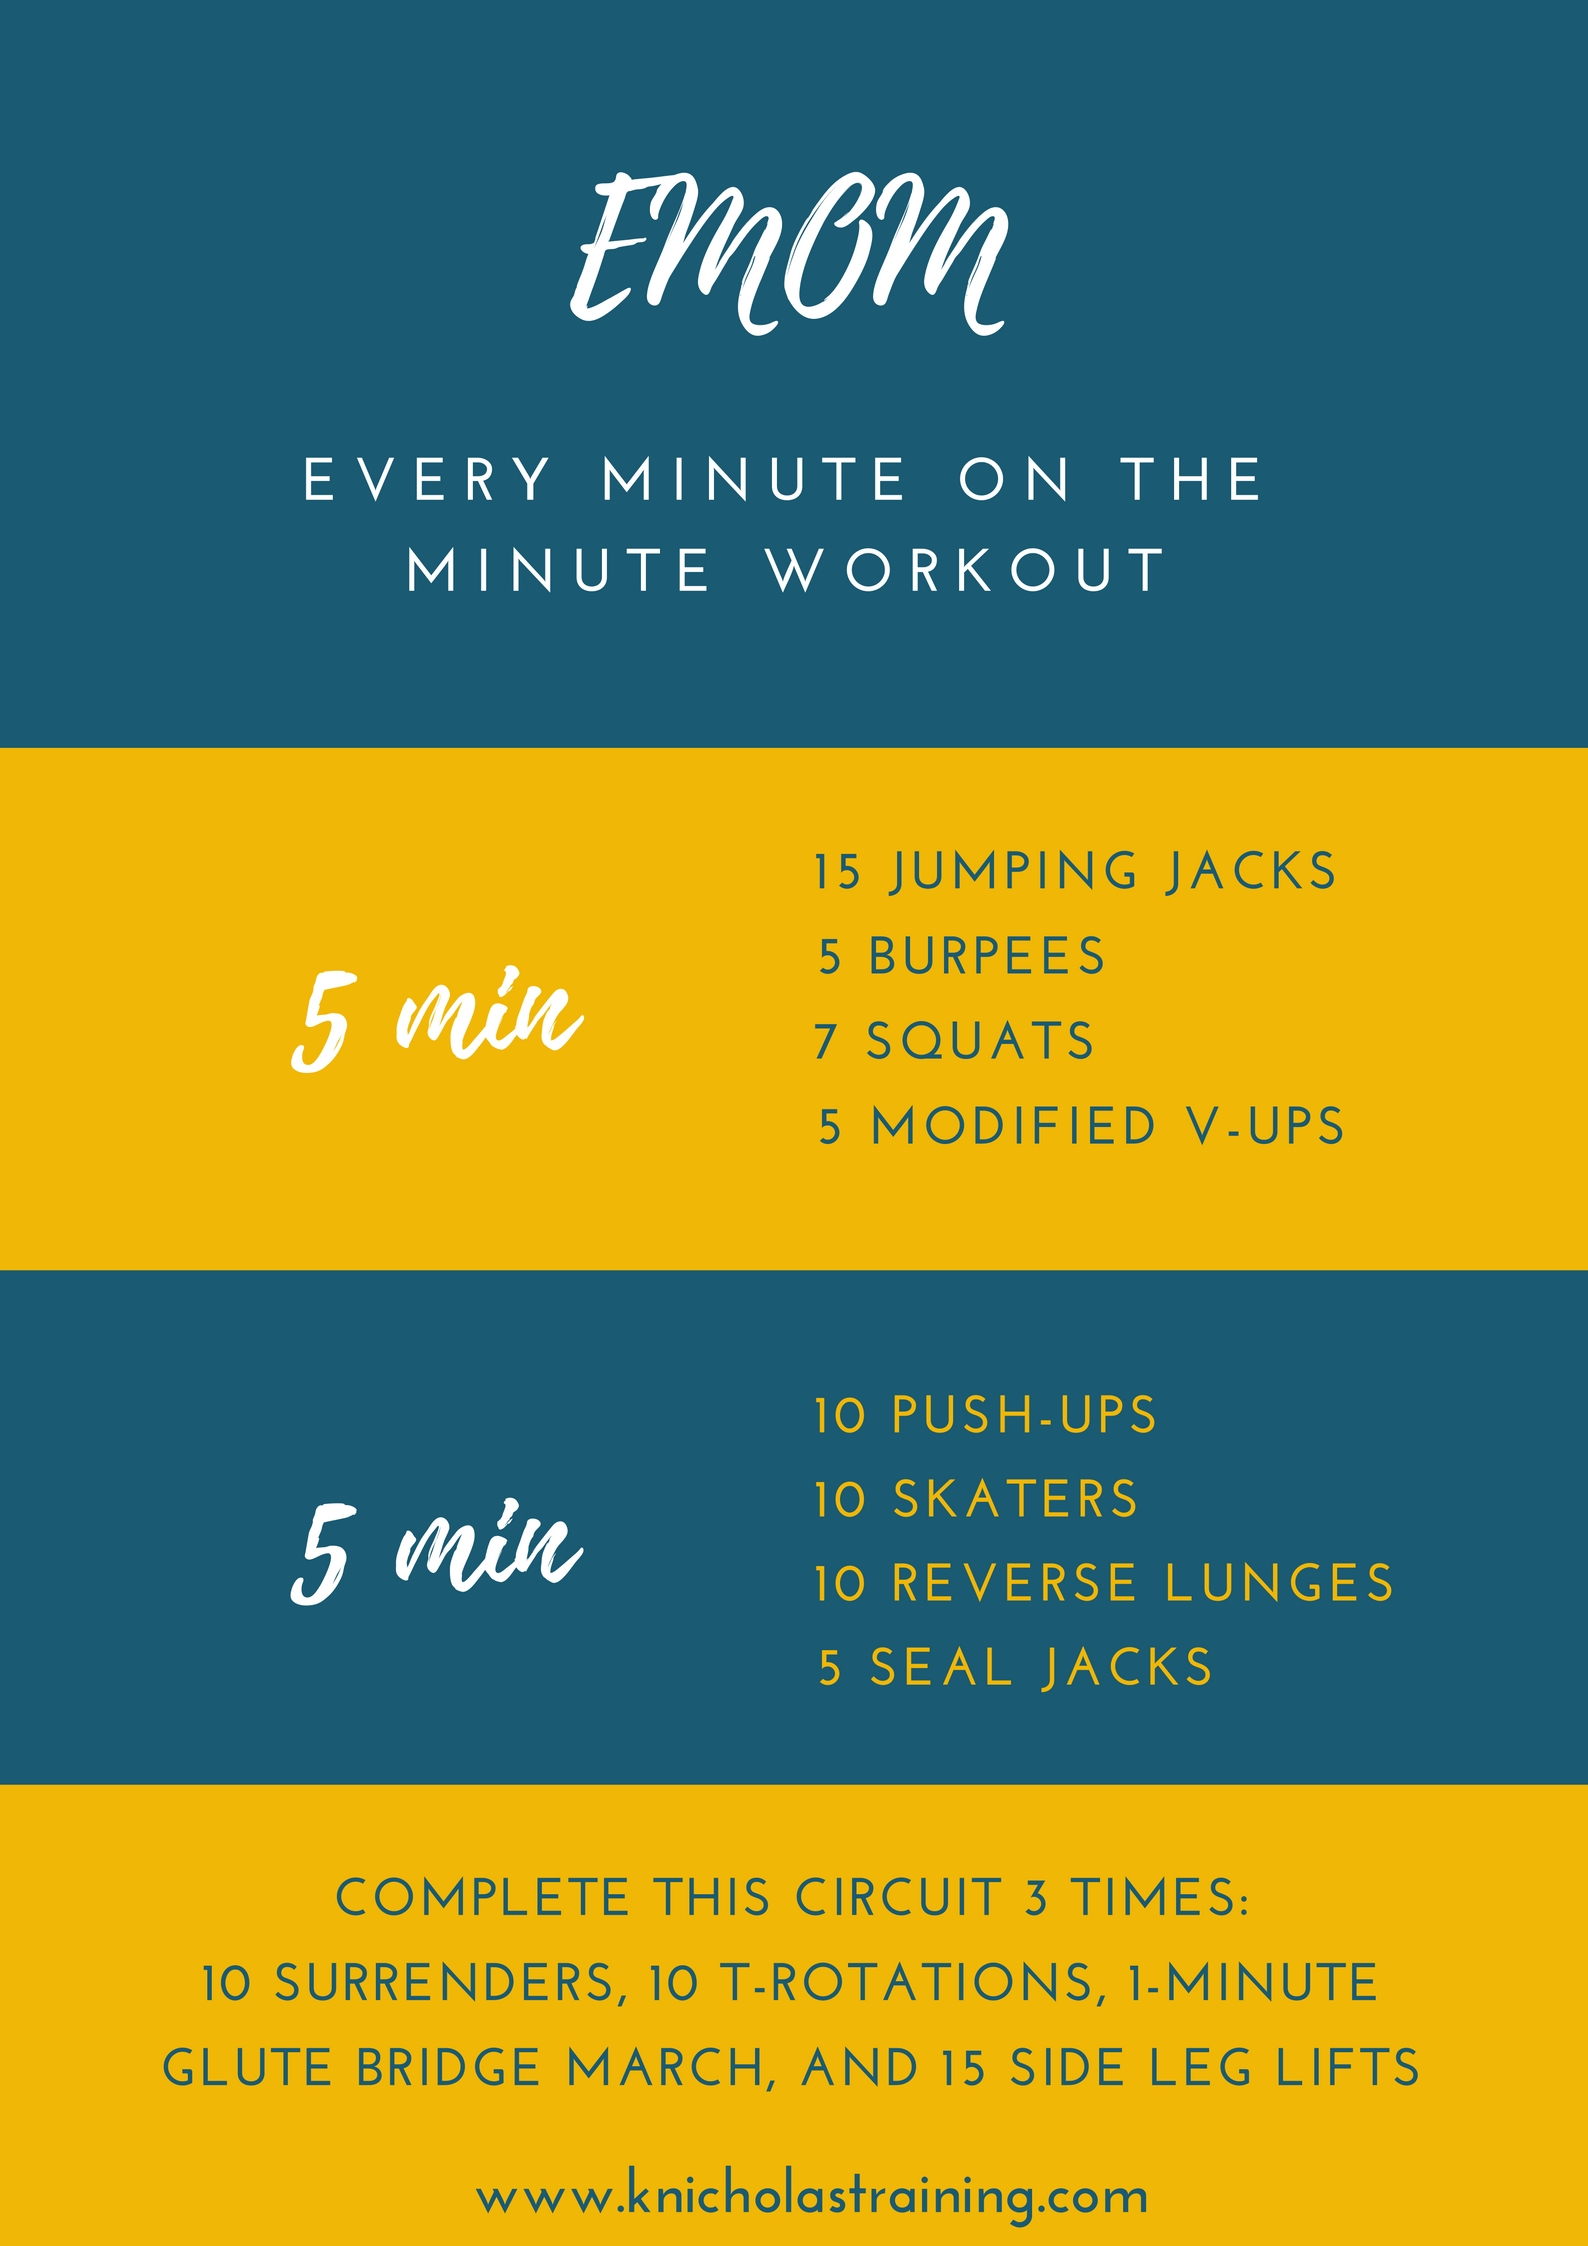 Every Minute on the Minute Interval Workout